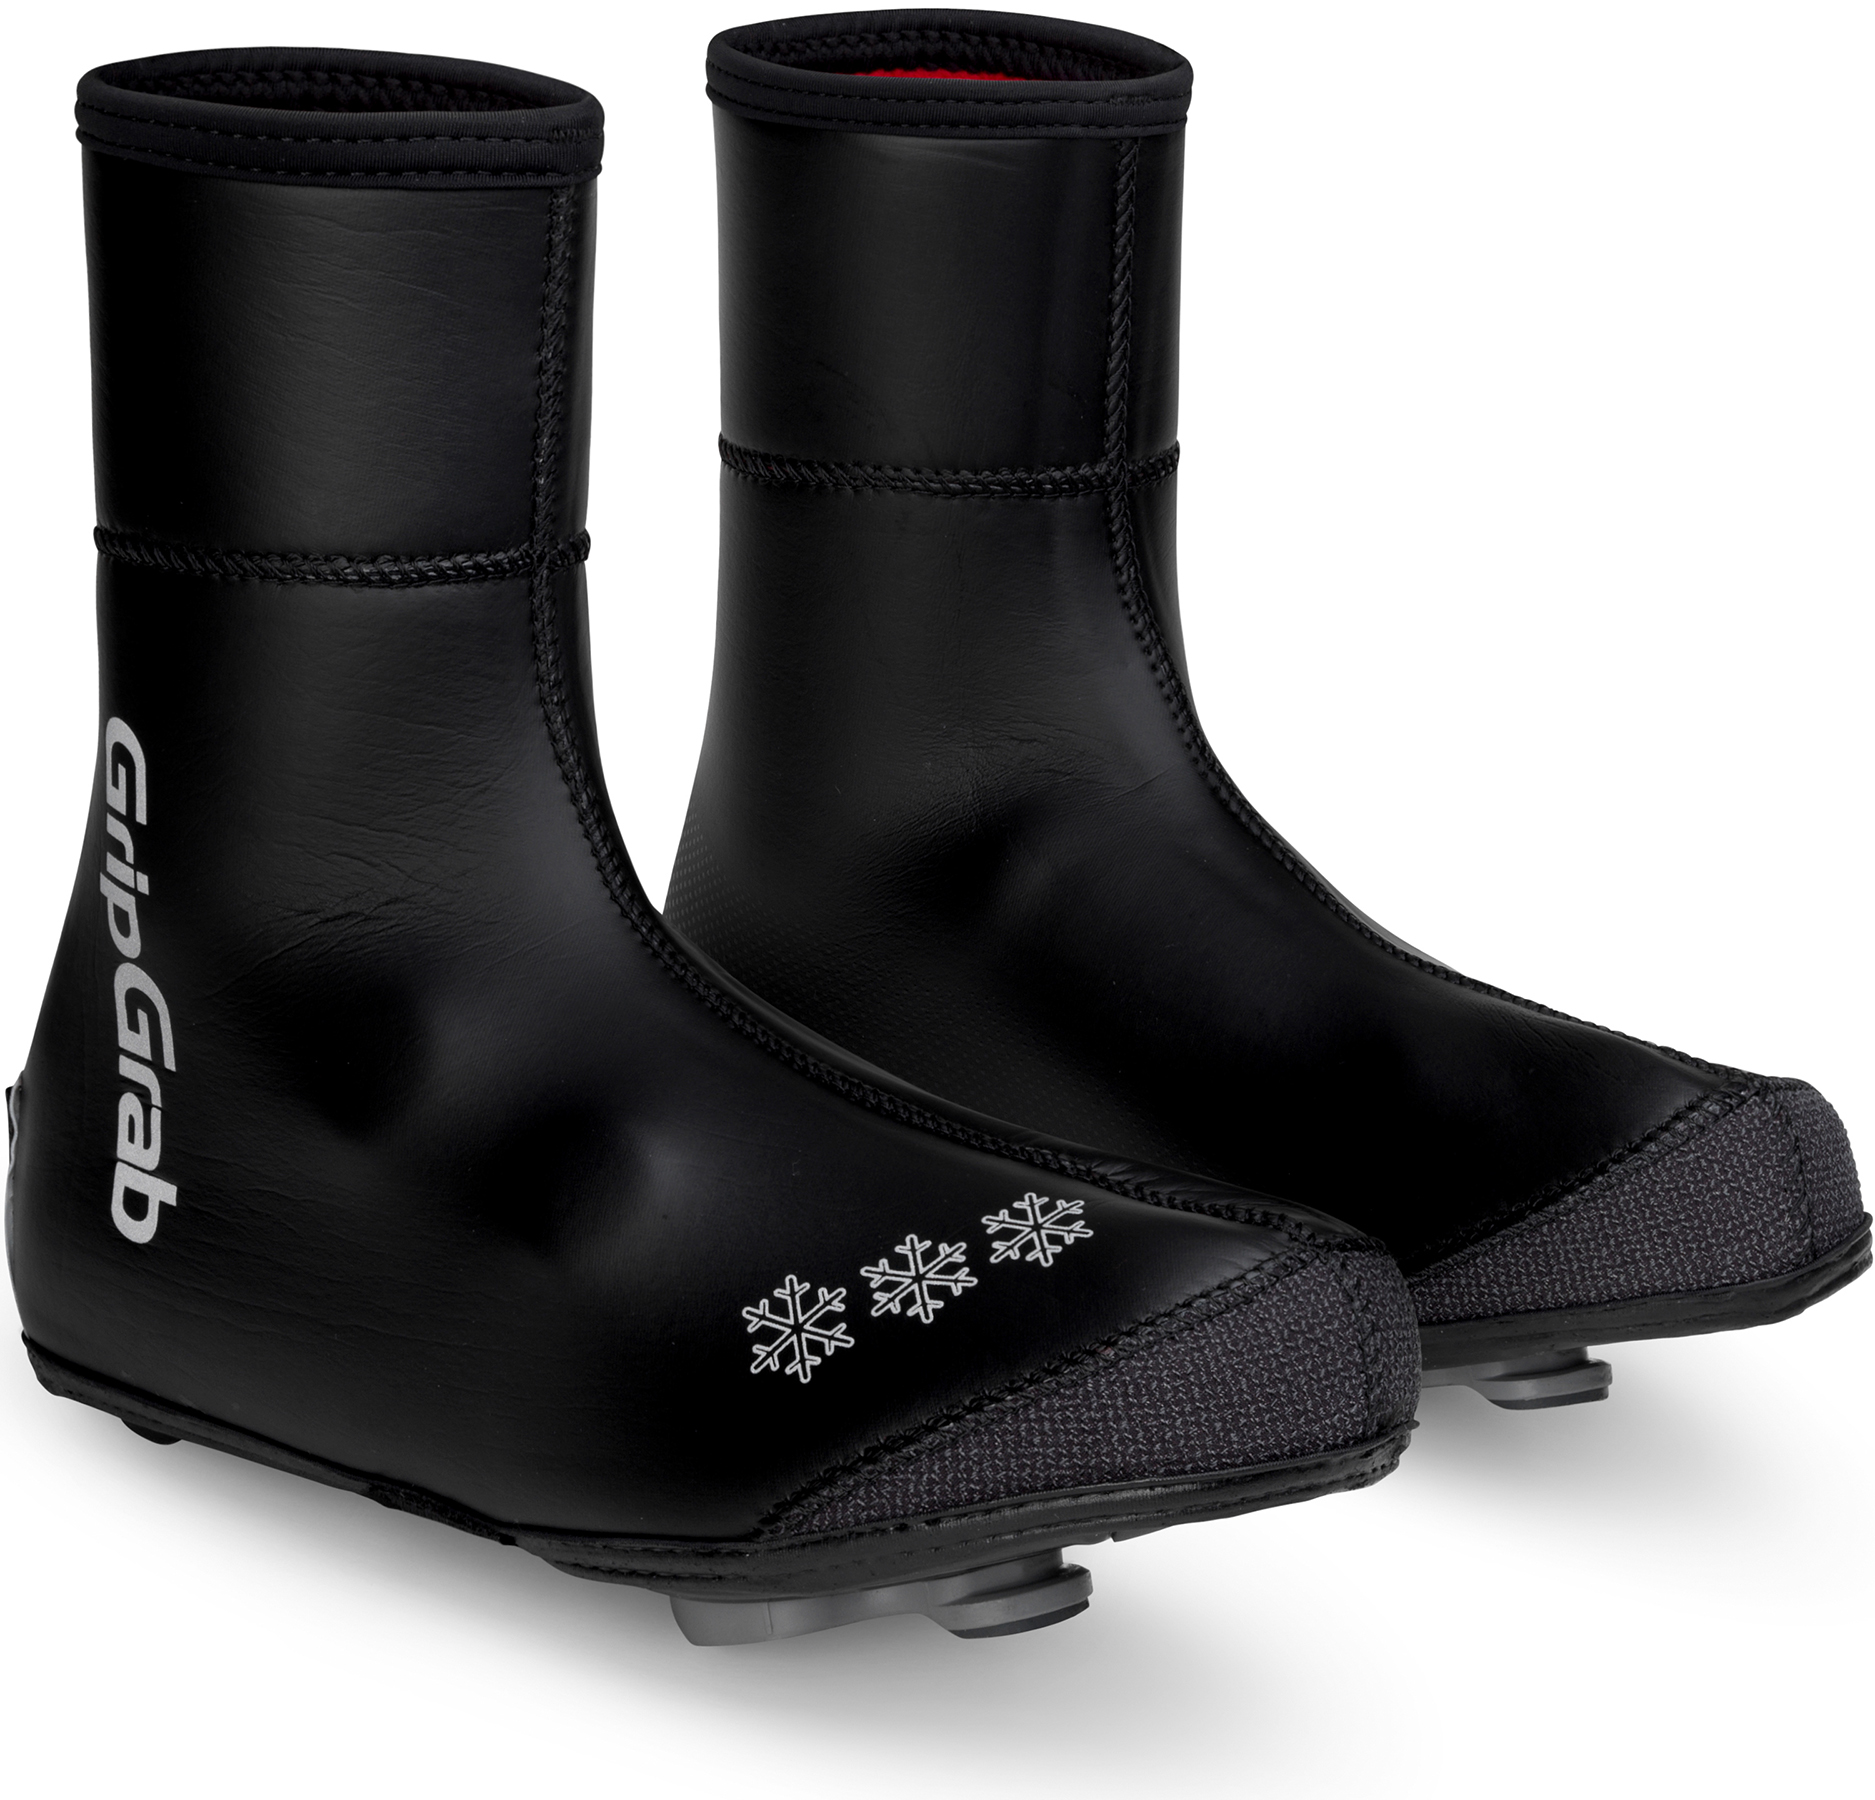 GripGrab Arctic Overshoes | shoecovers_clothes